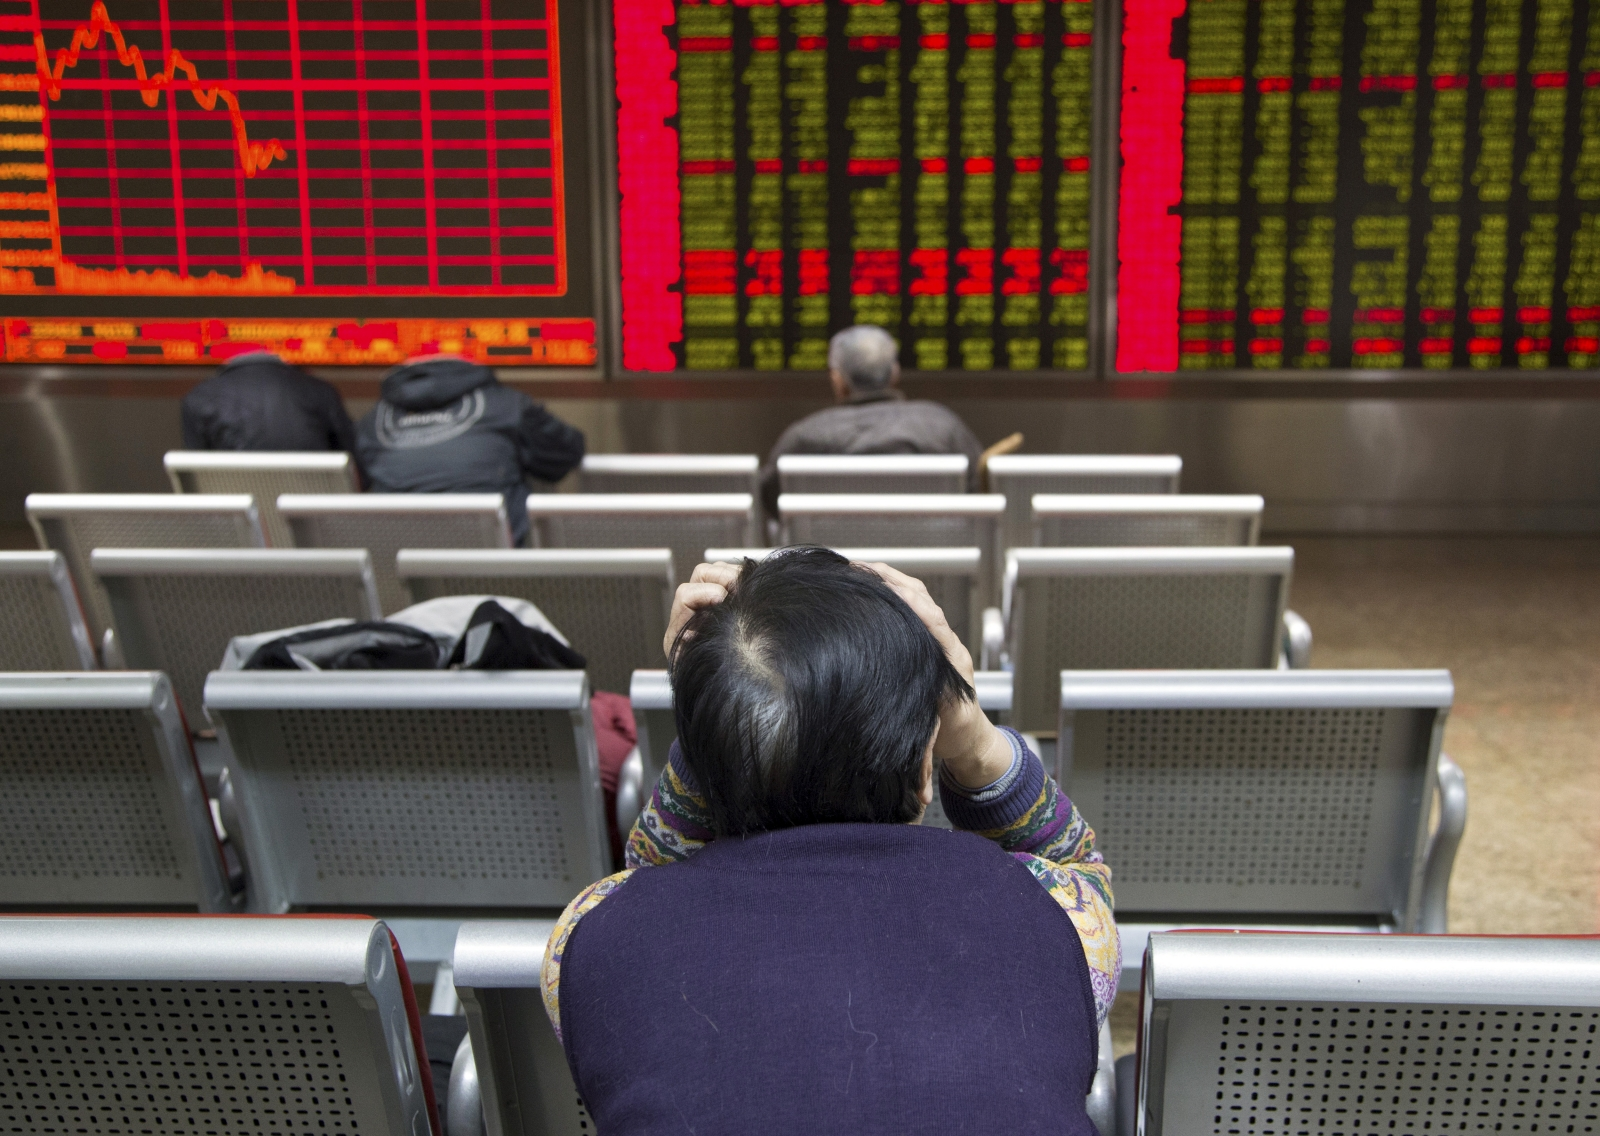 Asian markets: Shanghai Composite gains as the world awaits the outcome of the 23 June EU Referendum